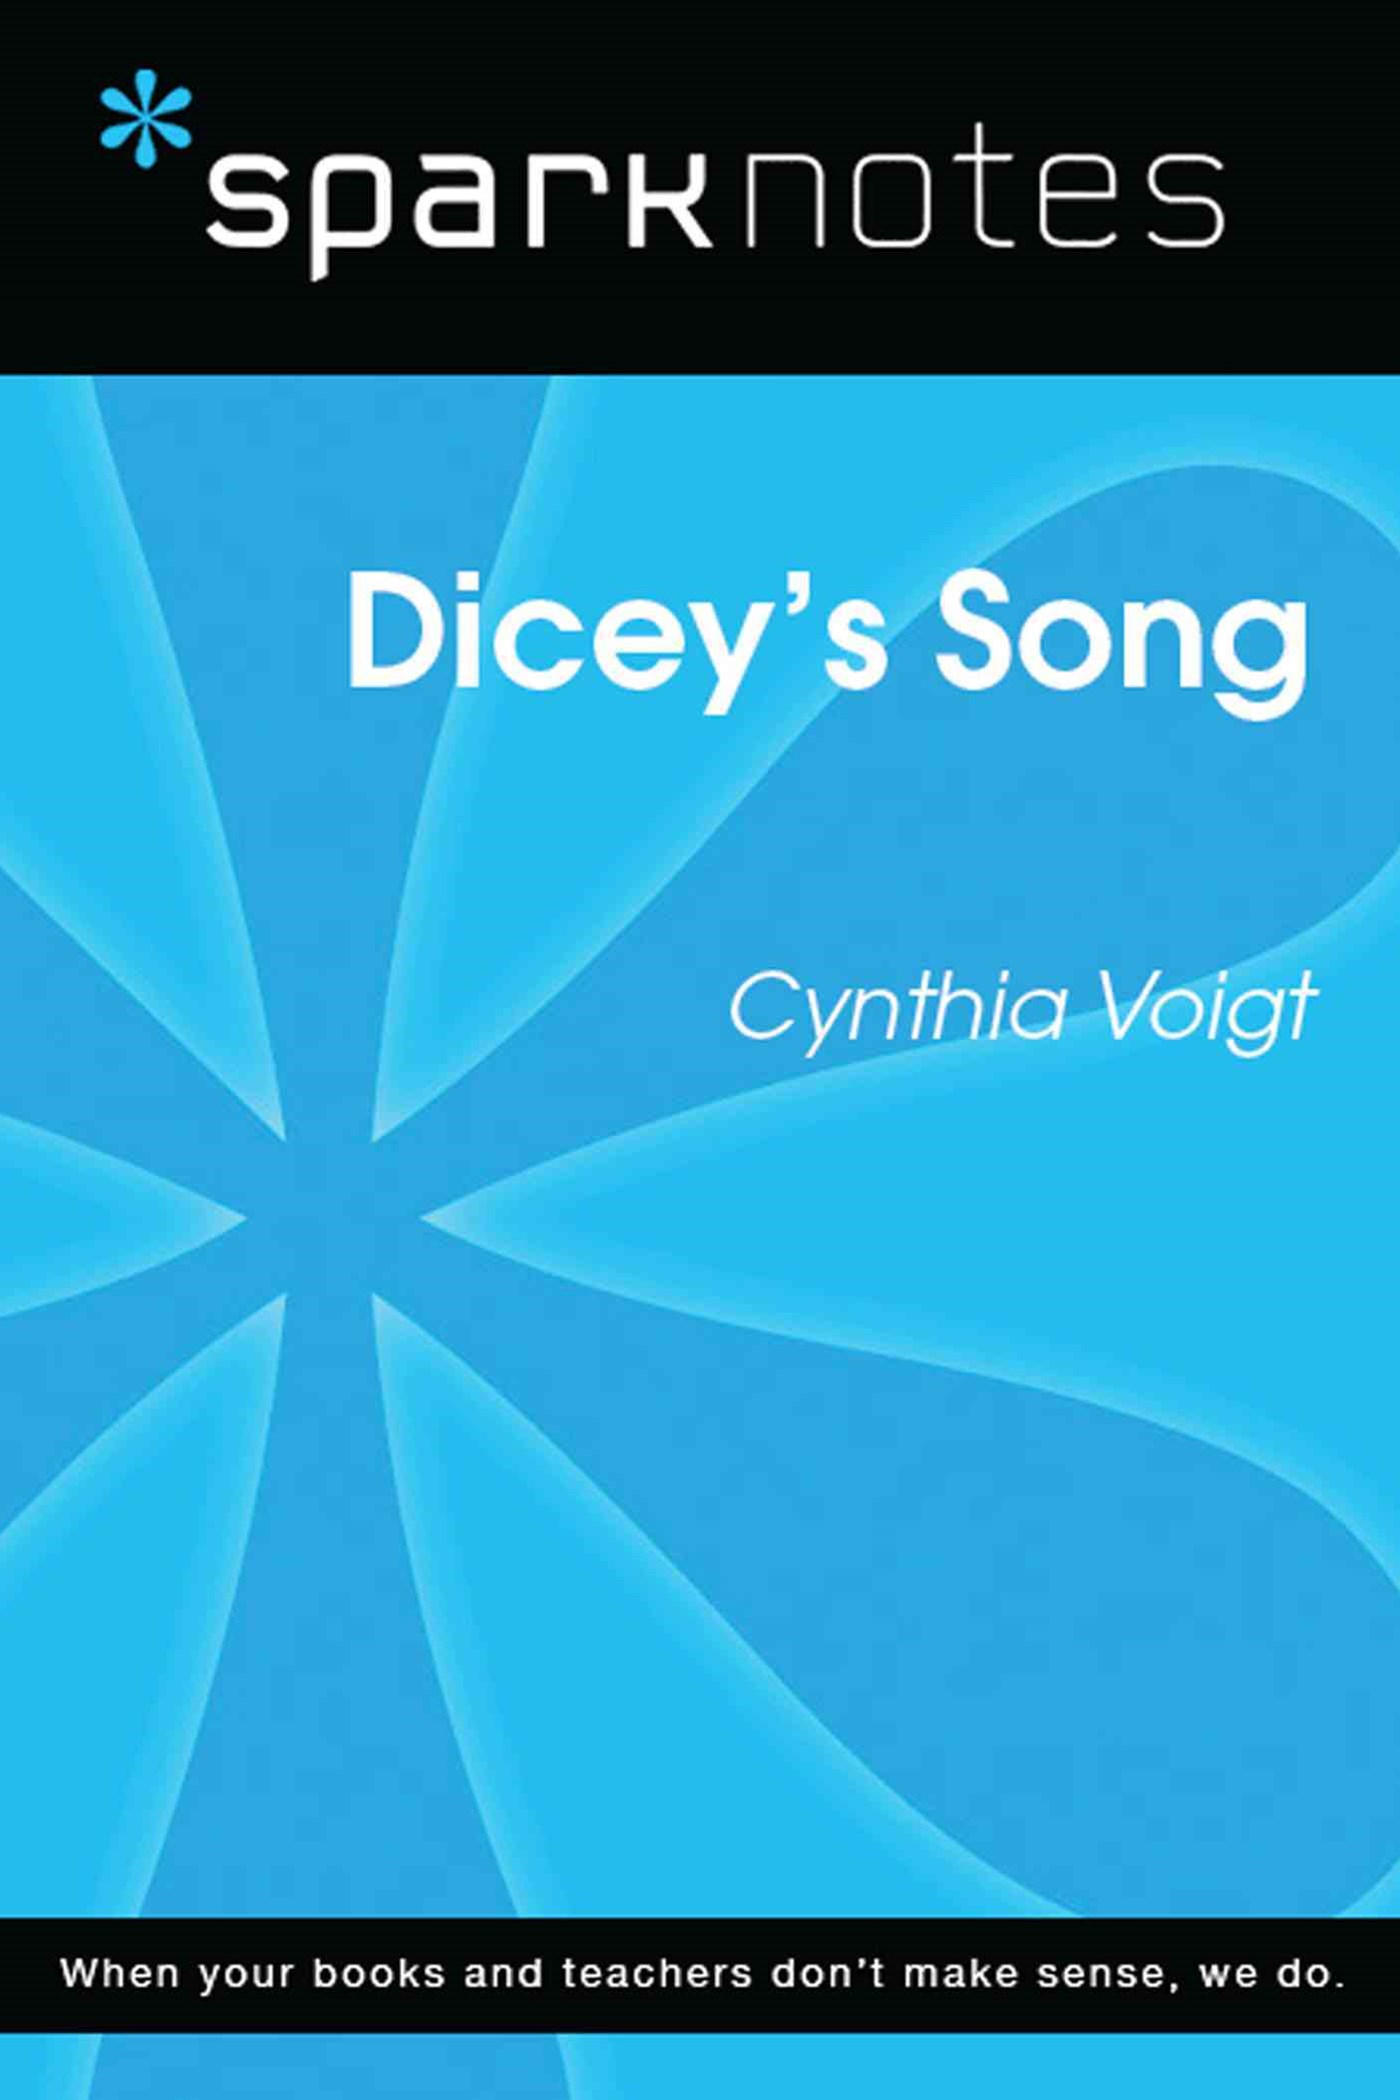 Dicey's Song (SparkNotes Literature Guide)